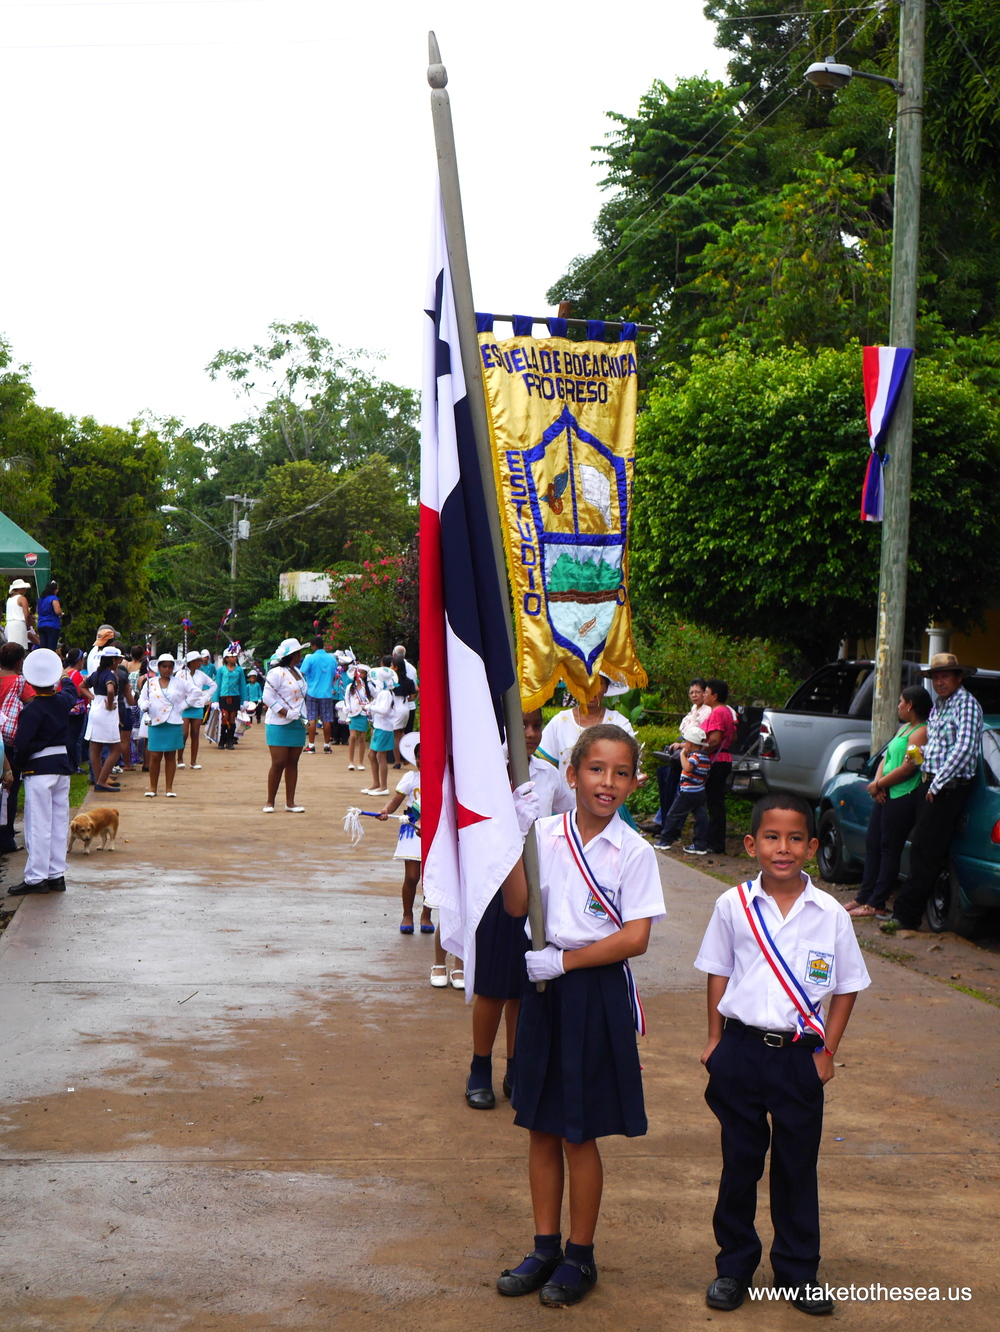 Parade in Boca Chica to celebrate Flag Day - I couldn't stay away, I love these kiddos too much.